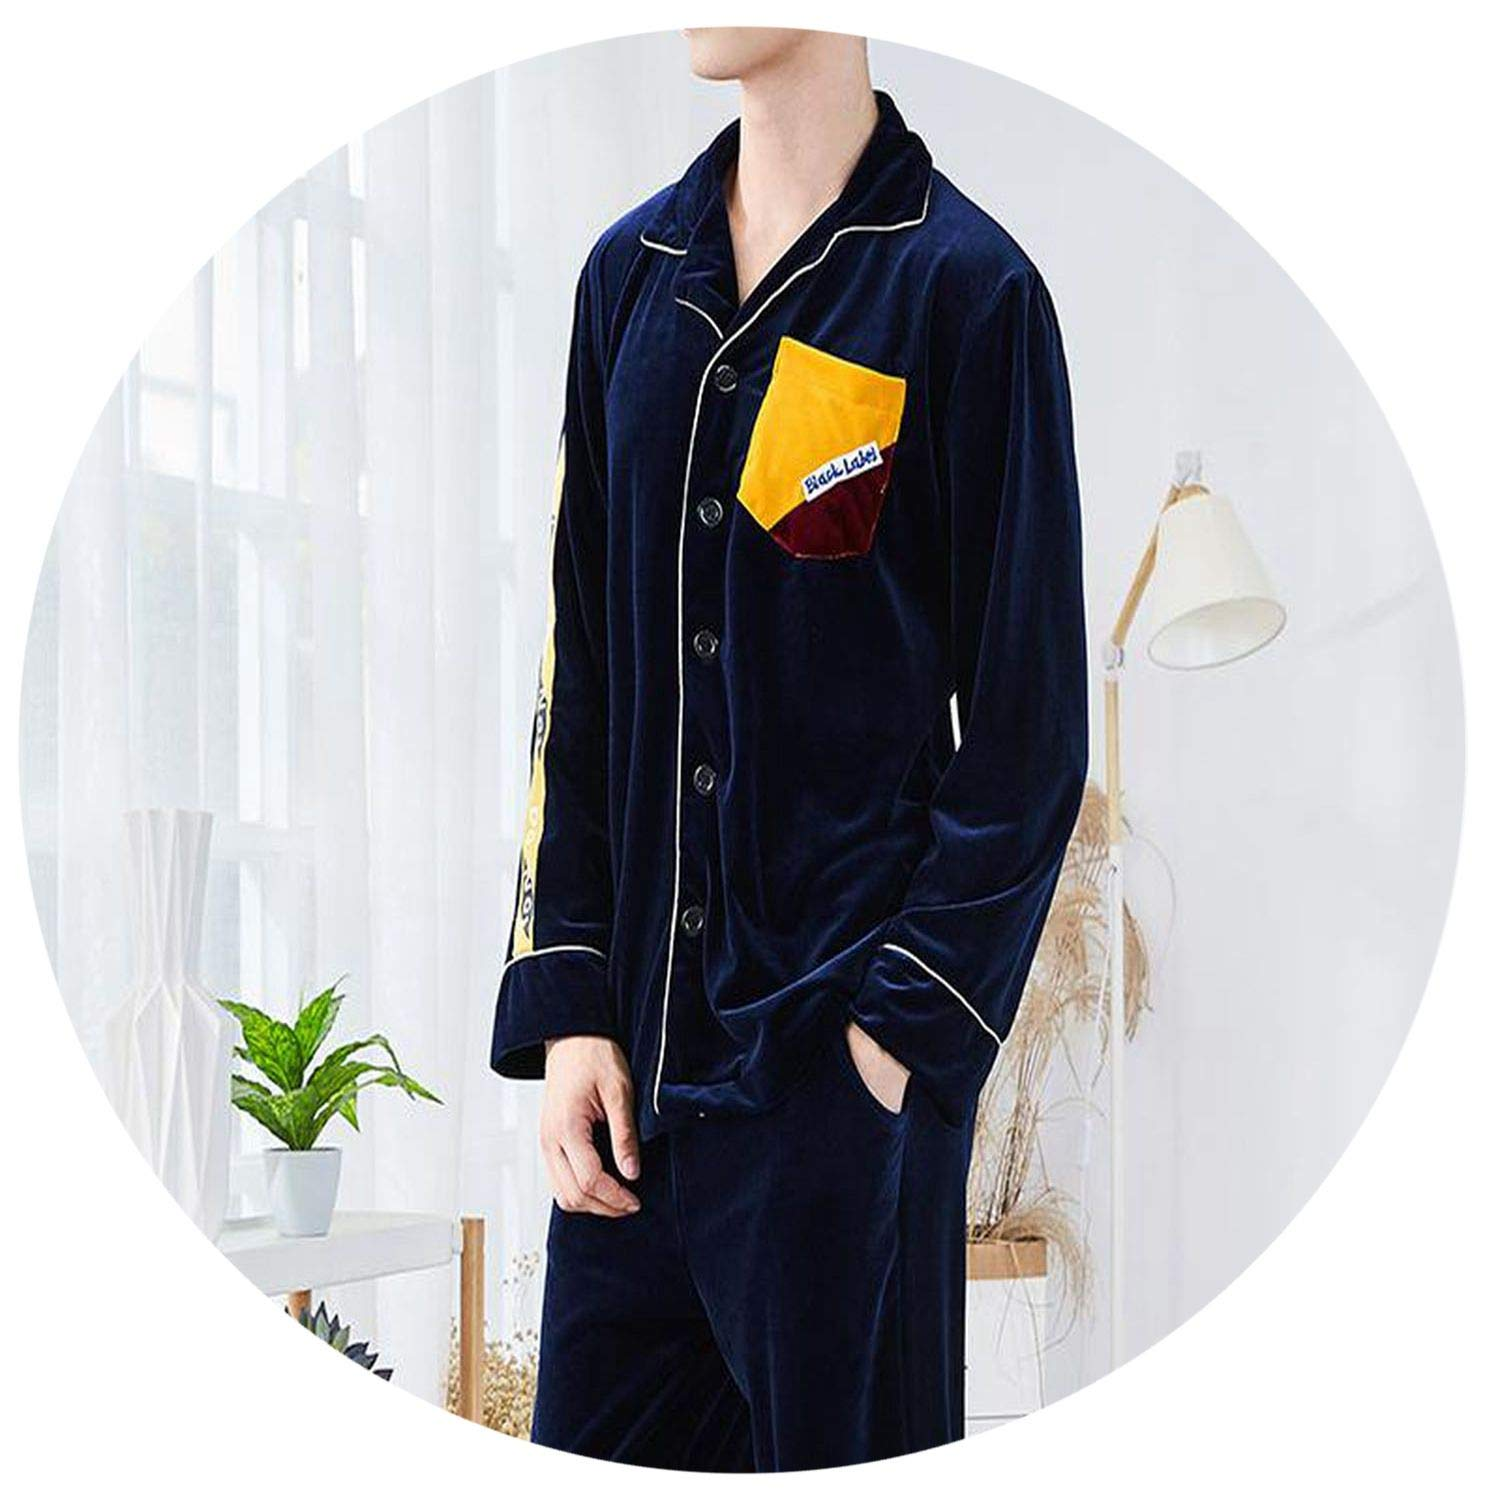 Men Warm Pajamas Set Velvet Long Sleeve 2PCS Sleepwear Daily Casual Home Clothes Solid Color Male Night Wear